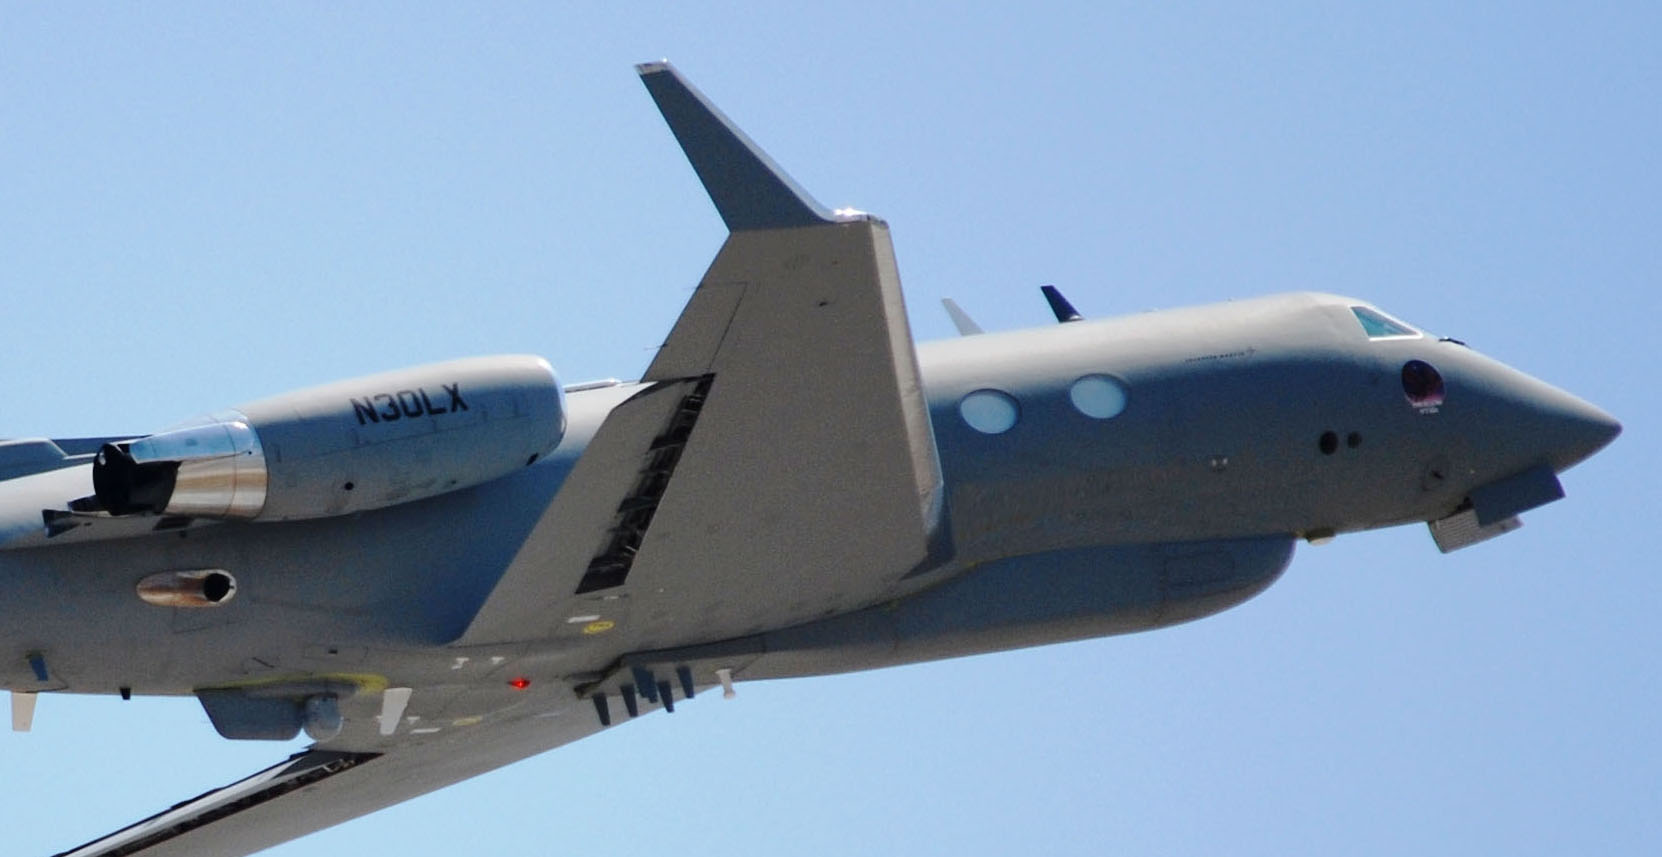 SGA2012: Lockheed Martin extends ISR solution as contracted service